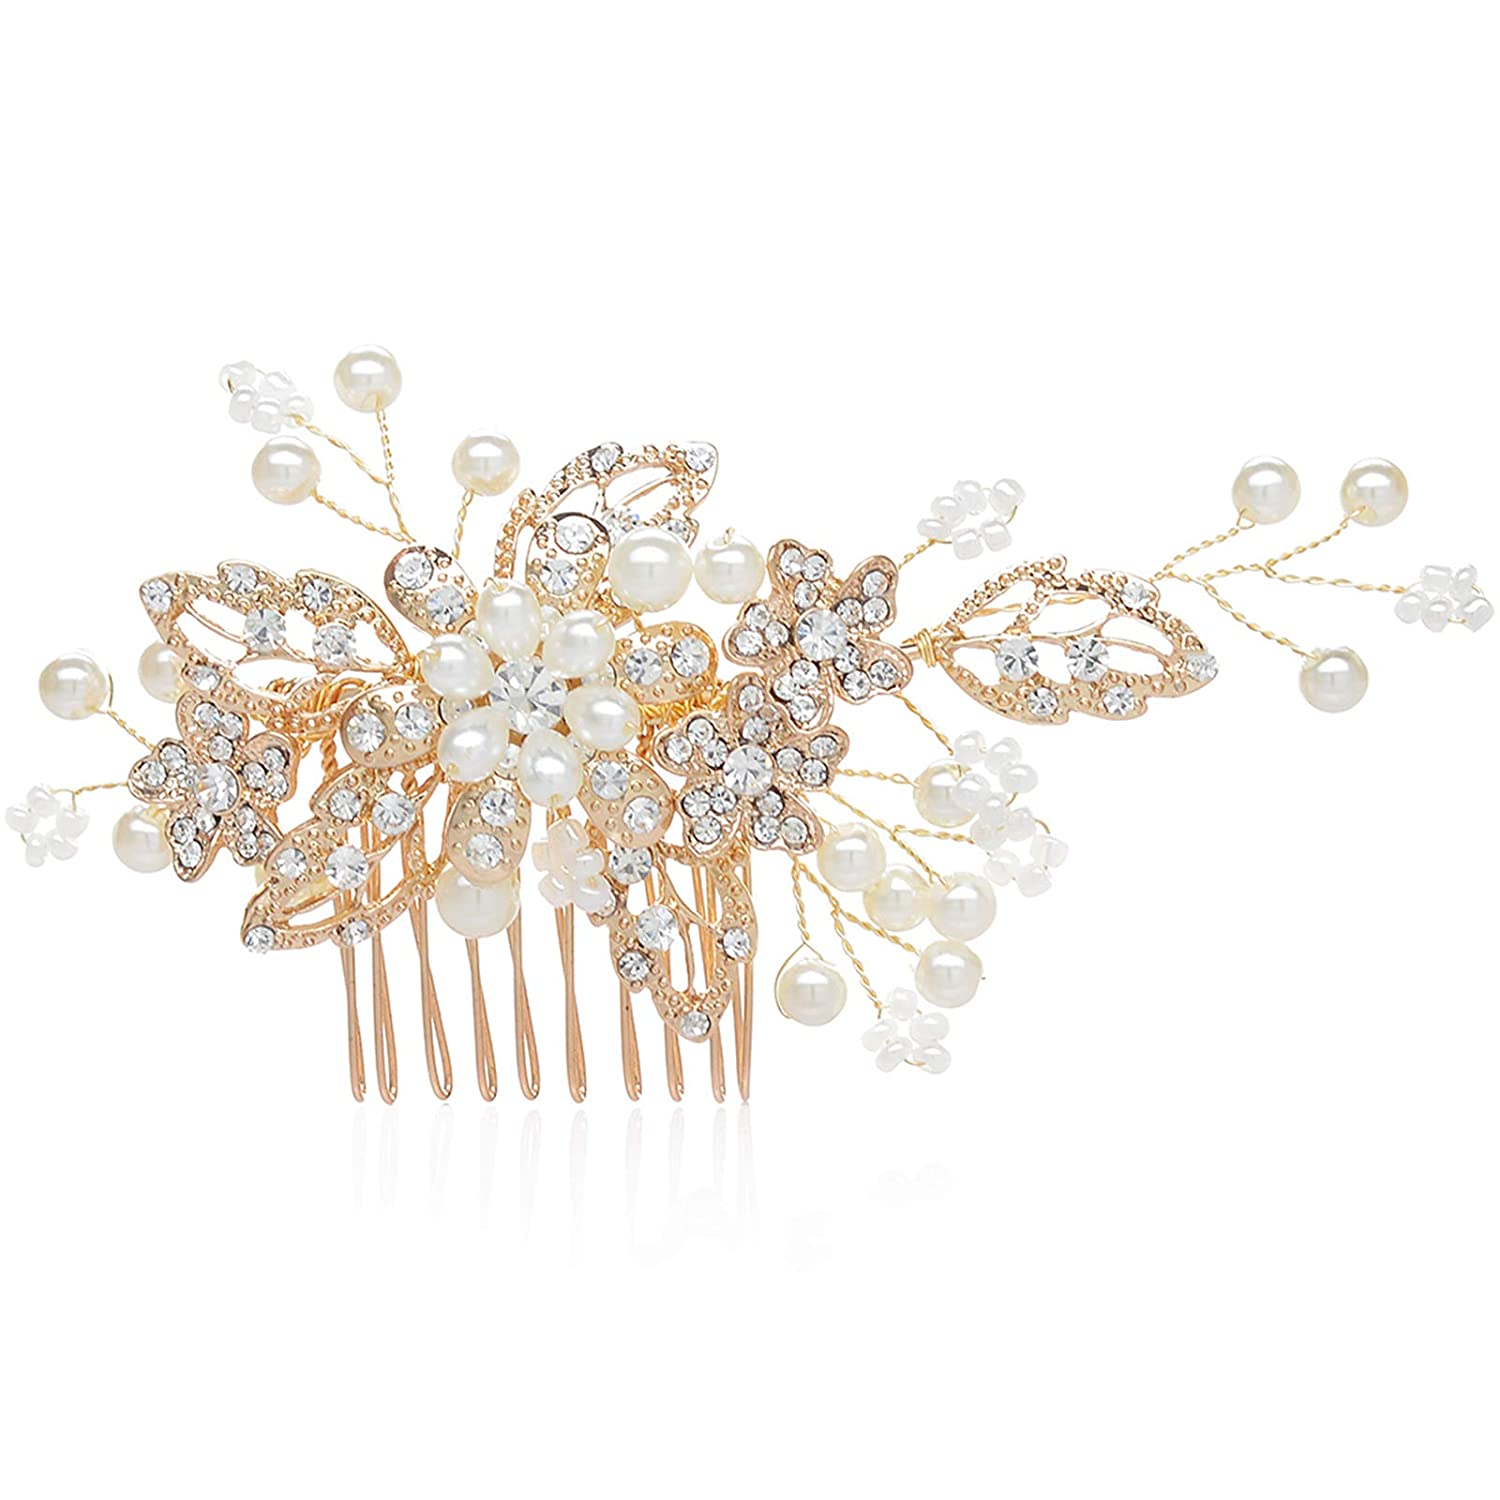 SWEETV Handmade Wedding Hair Comb Clip Pearl Hairpin Rhinestone Combs Bridal Hair Accessories Gold SVSFS140058